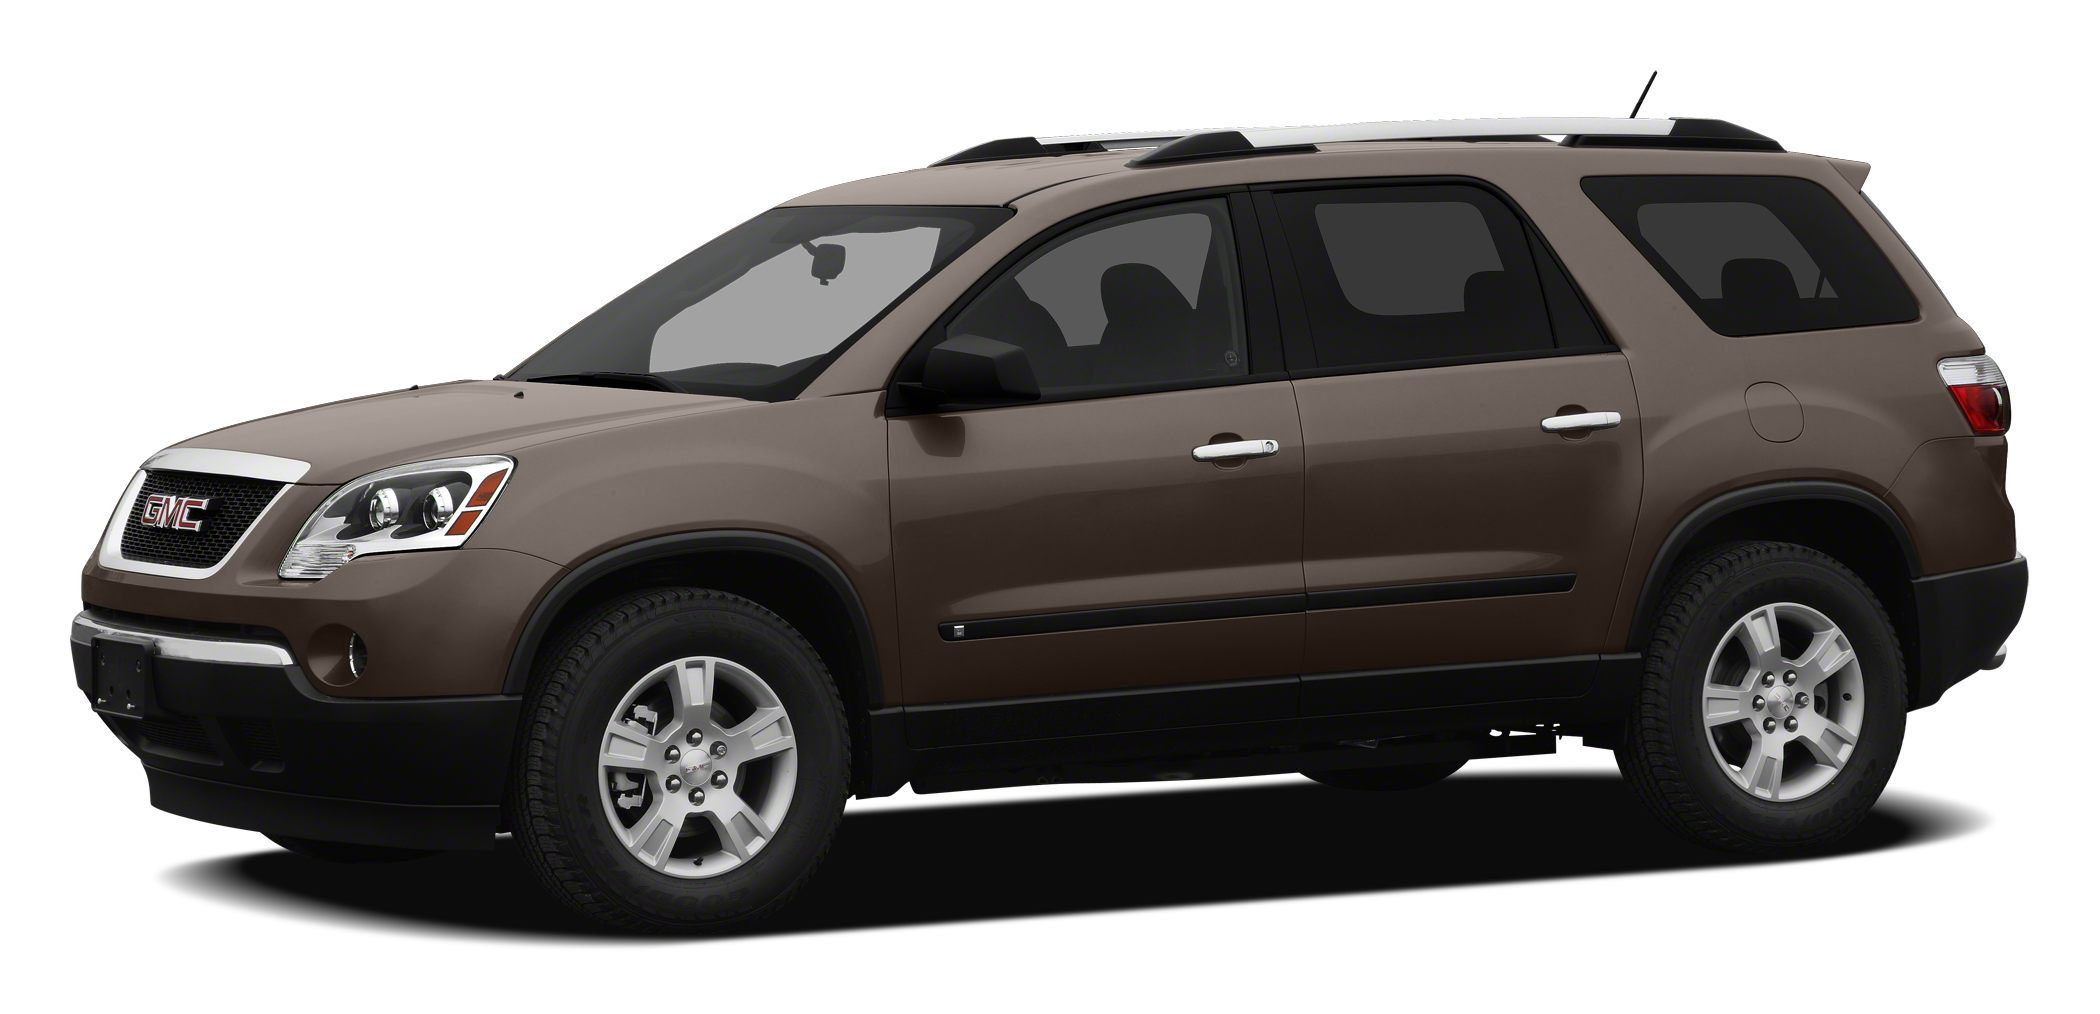 2012 GMC Acadia SLE ITS OUR 50TH ANNIVERSARY HERE AT MARTYS AND TO CELEBRATE WERE OFFERING THE MO